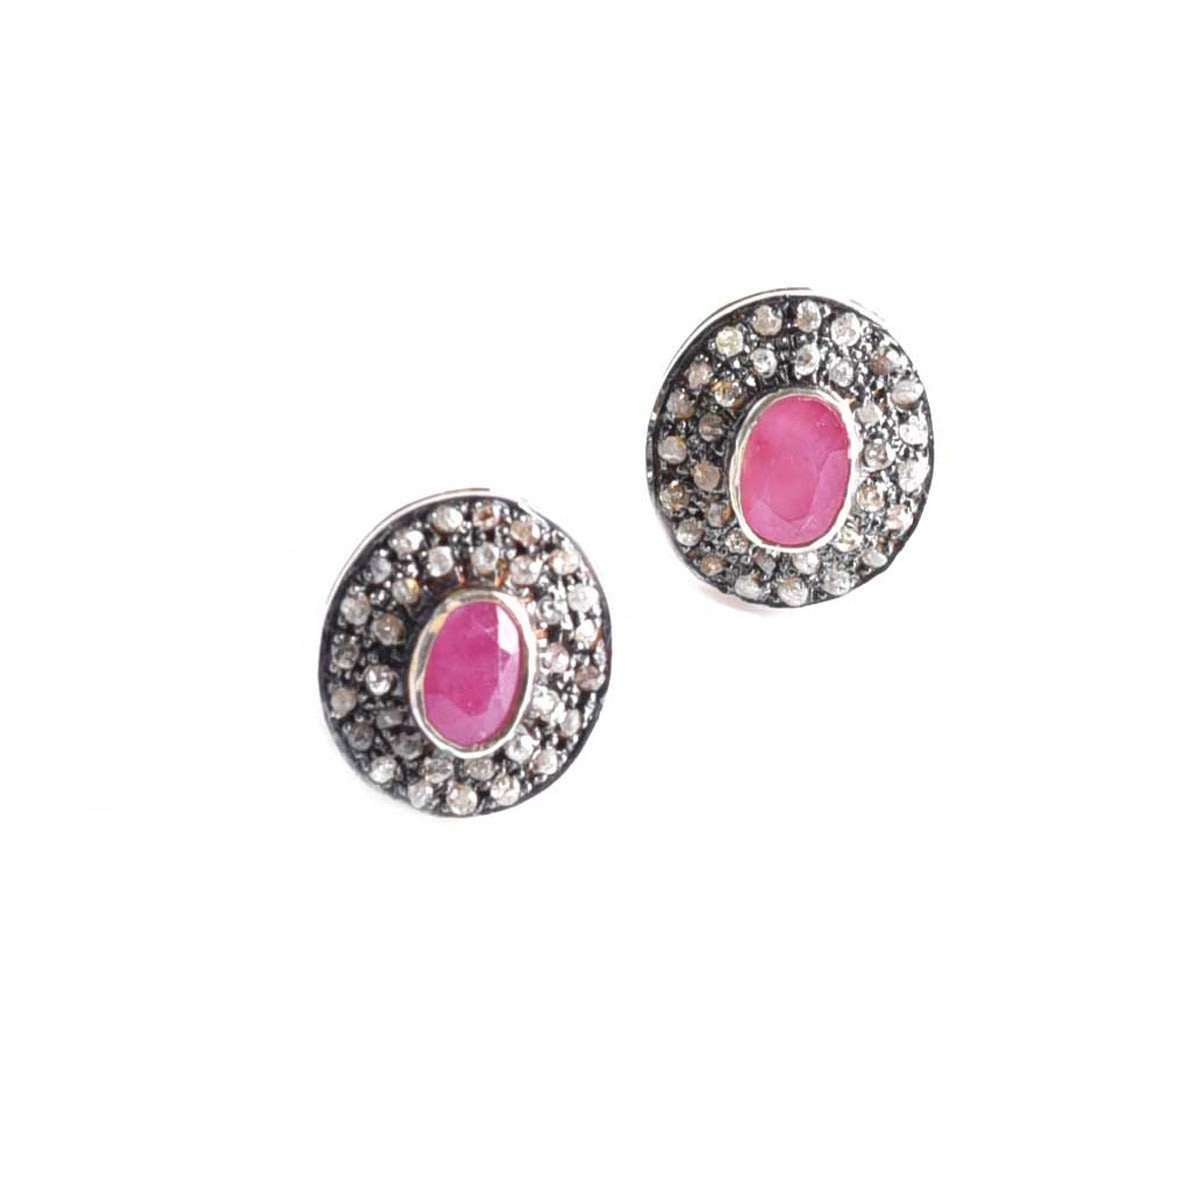 Elegance Earrings with Diamonds and Ruby-M's Gems by Mamta Valrani-JewelStreet US